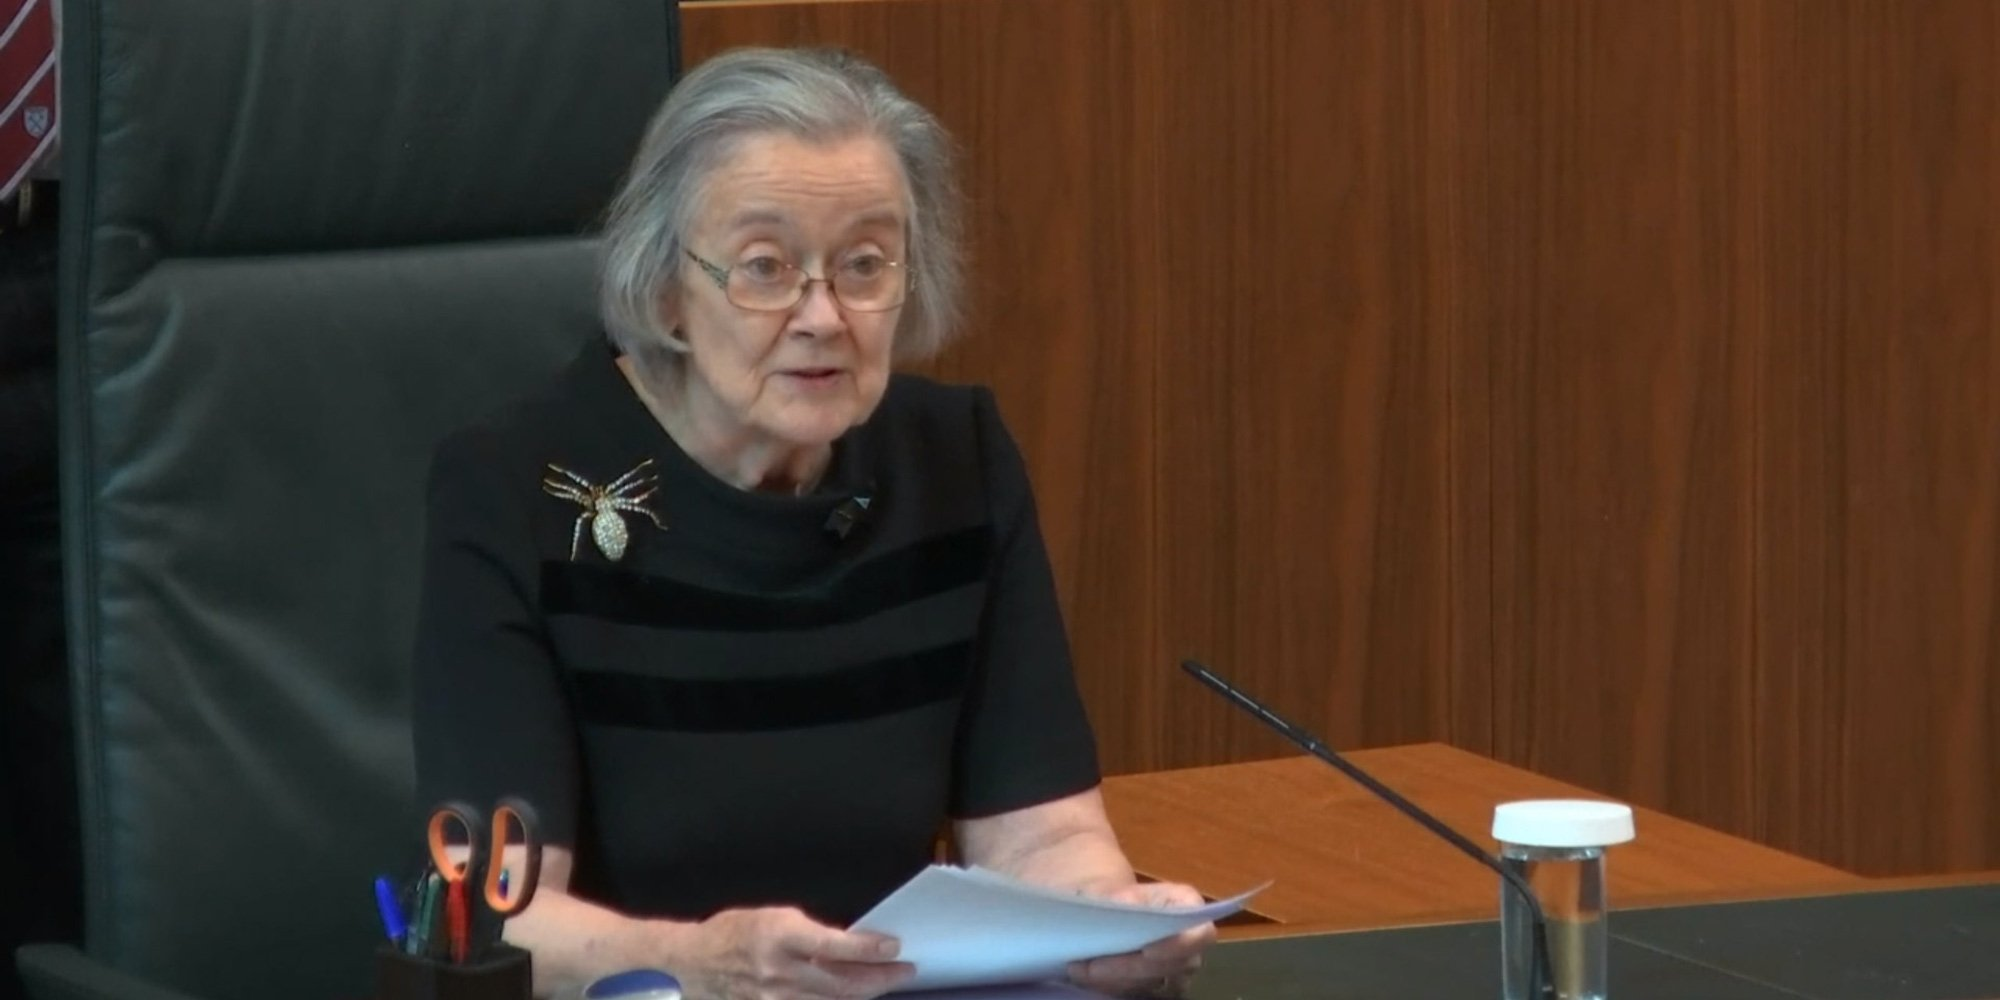 UK Supreme Court head Brenda Hale reading out the verdict. Photo courtesy: Twitter